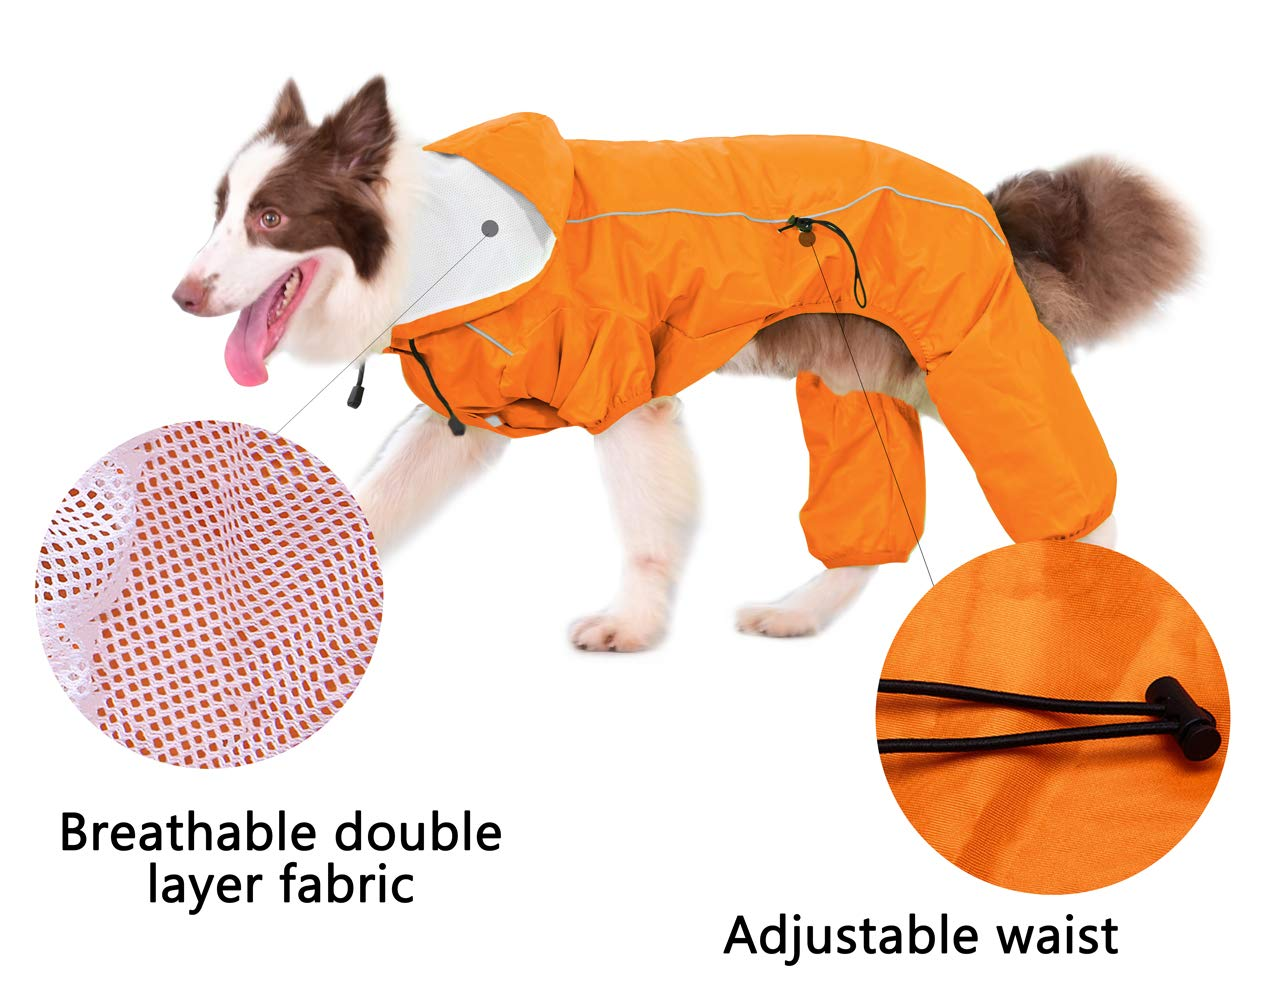 OSPet Dog Raincoat Summer Comfort Breathable Waterproof Four Feet Raincoat With Hood Safe Reflective Stripes For Medium Large Dog